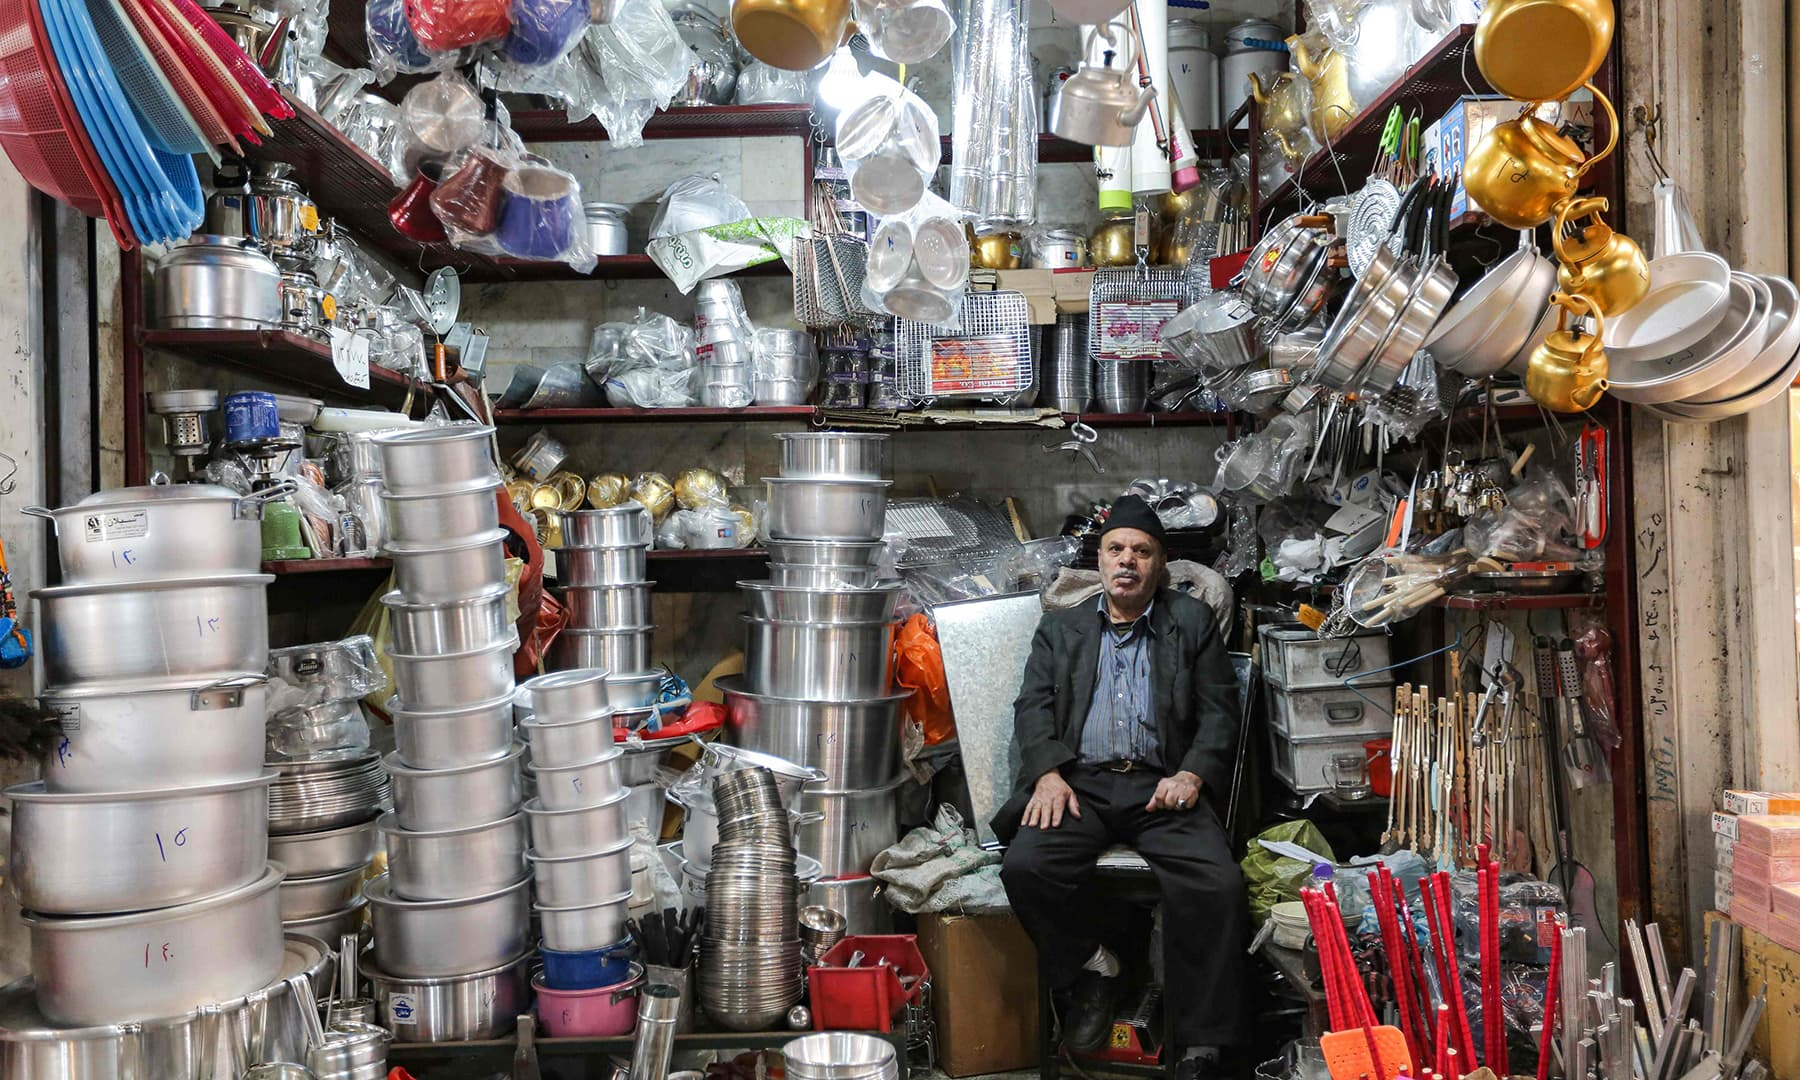 A merchant selling kitchenware sits in his shop waiting for customers in Tajrish Bazaar in Iran's capital Tehran on April 25, during Ramazan. — AFP